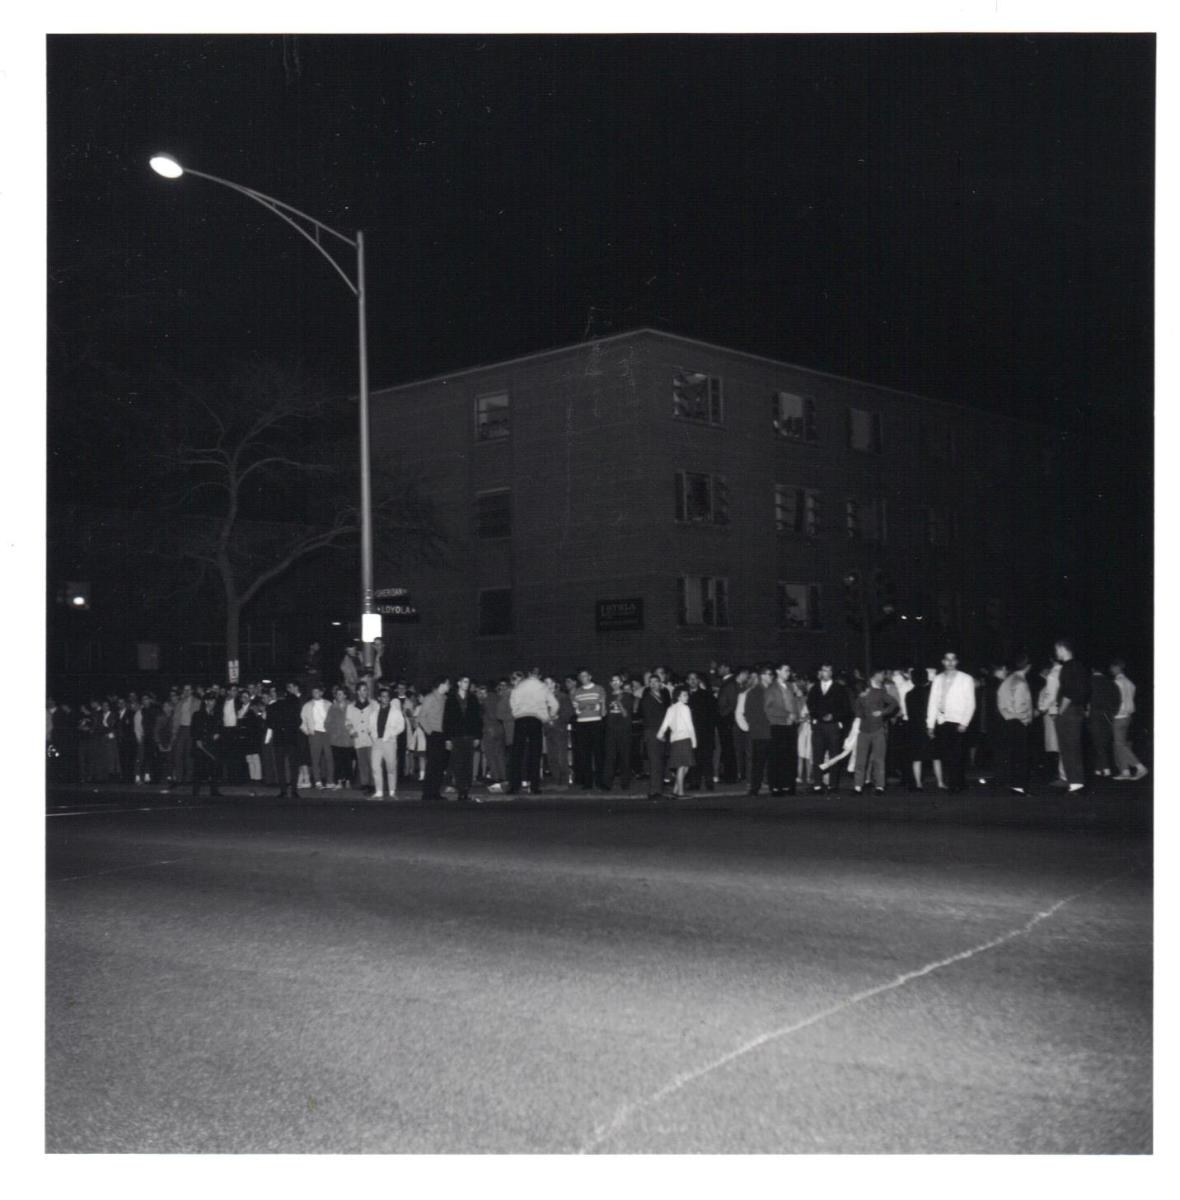 Students line Sheridan Road celebrating Loyola's National Basketball Championship on March 23, 1963.